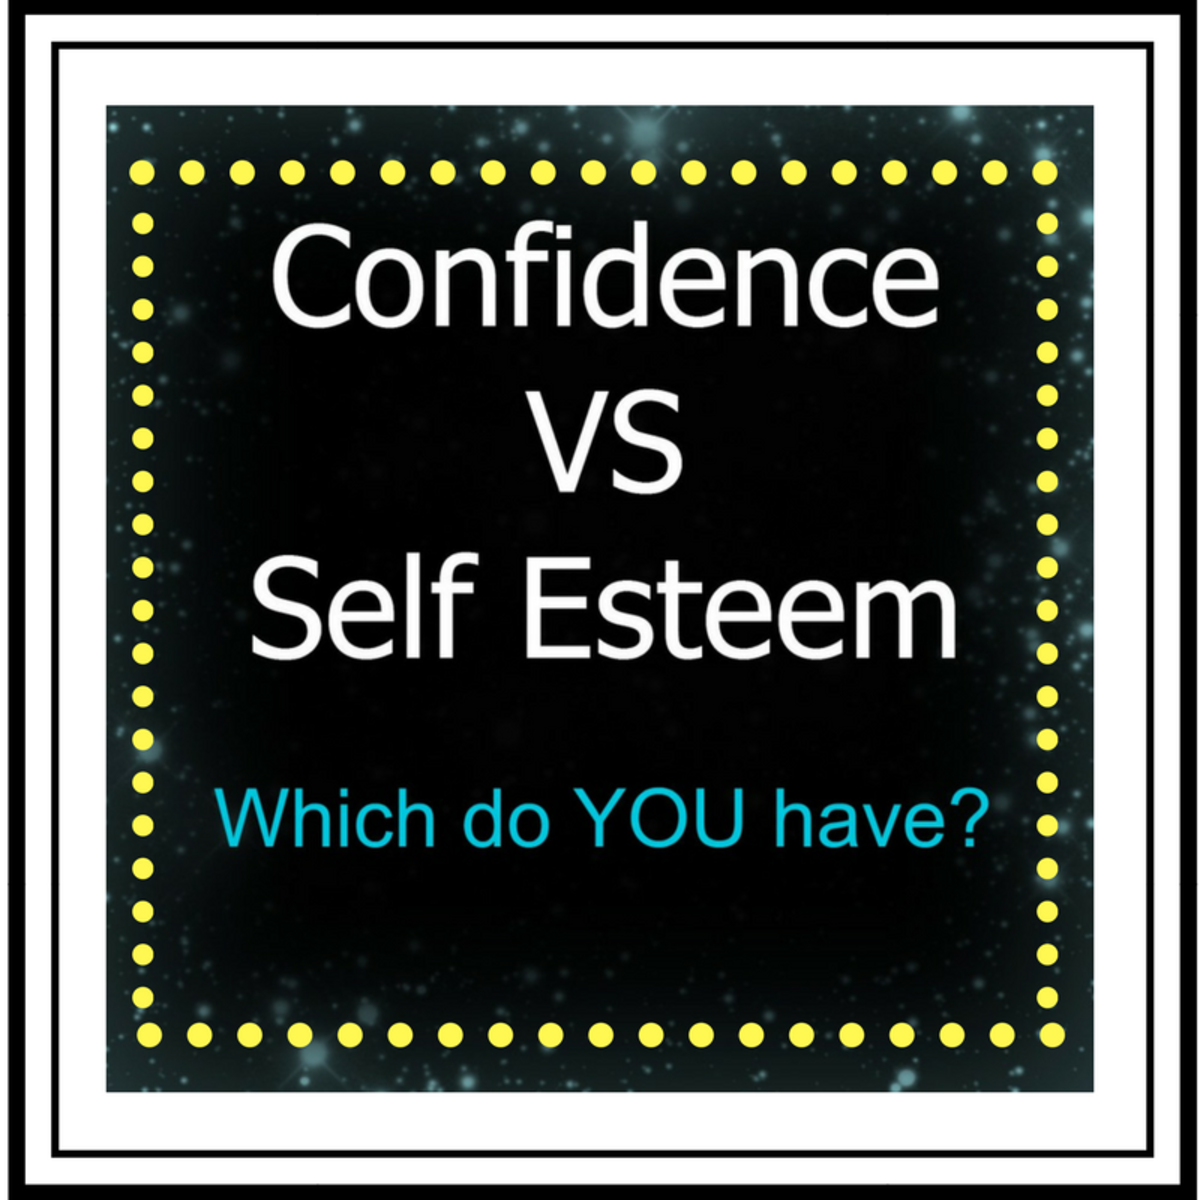 whats-the-difference-between-self-esteem-and-confidence